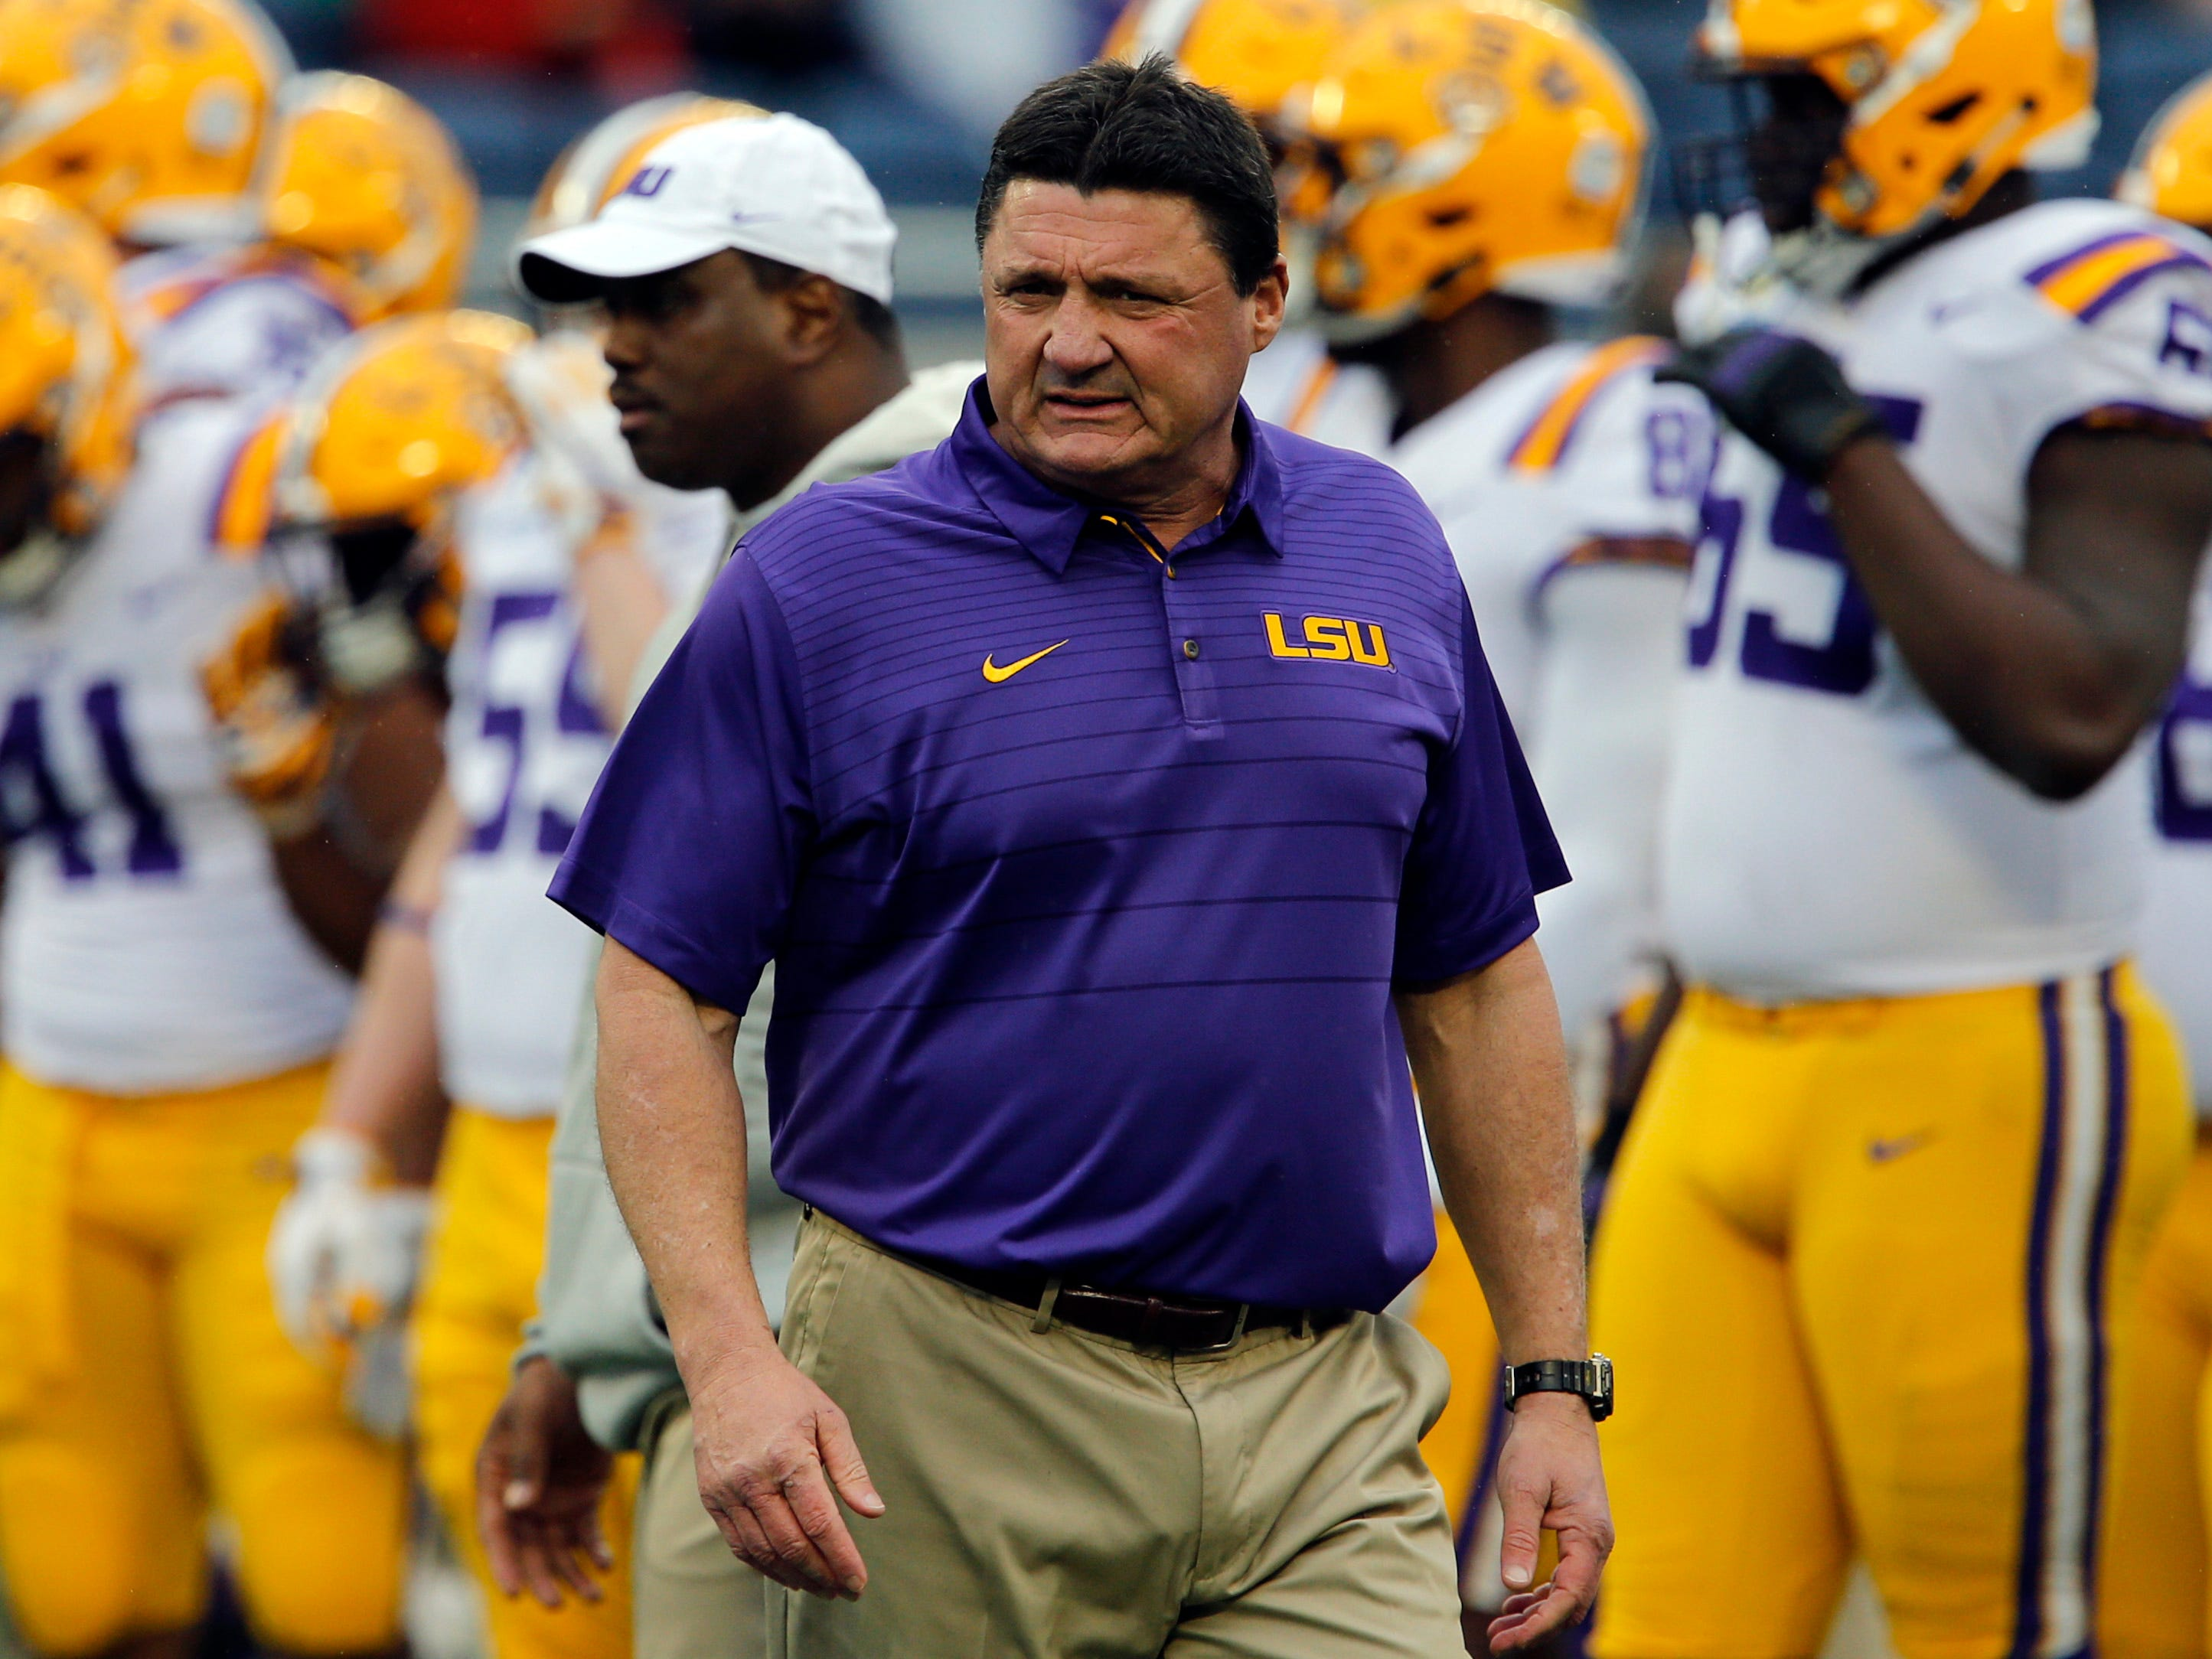 No. 24 LSU Tigers (9-4 in 2017).